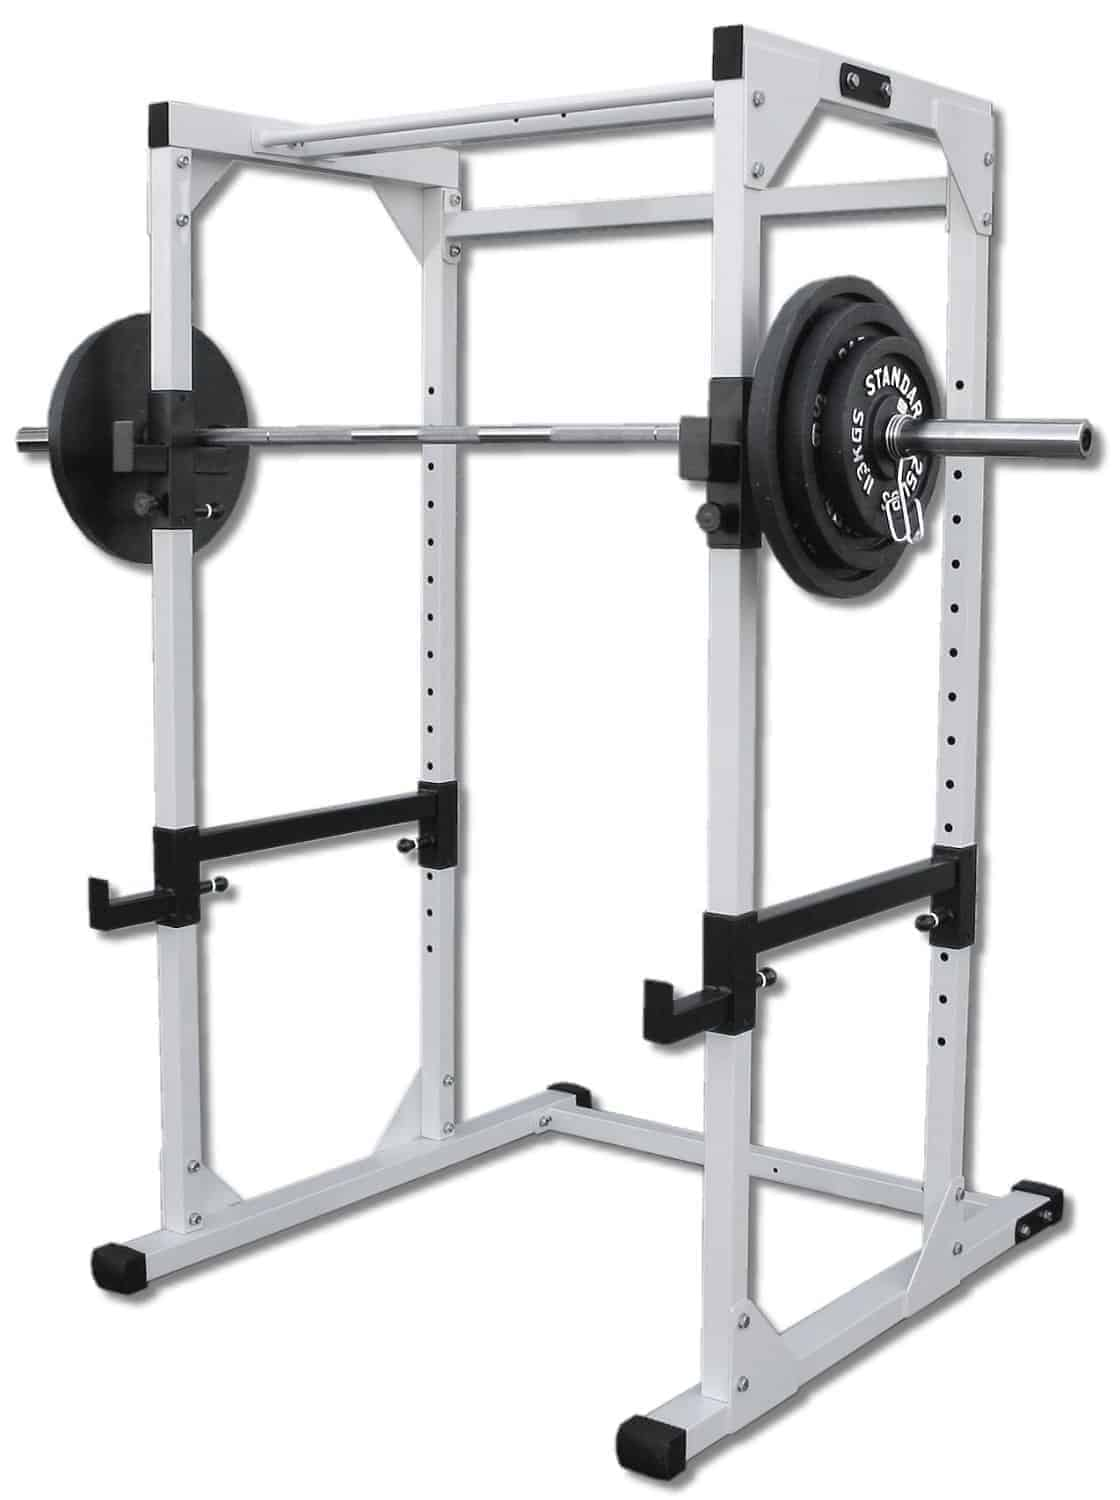 best 6 power rack reviews guide to get perfect cage for home. Black Bedroom Furniture Sets. Home Design Ideas